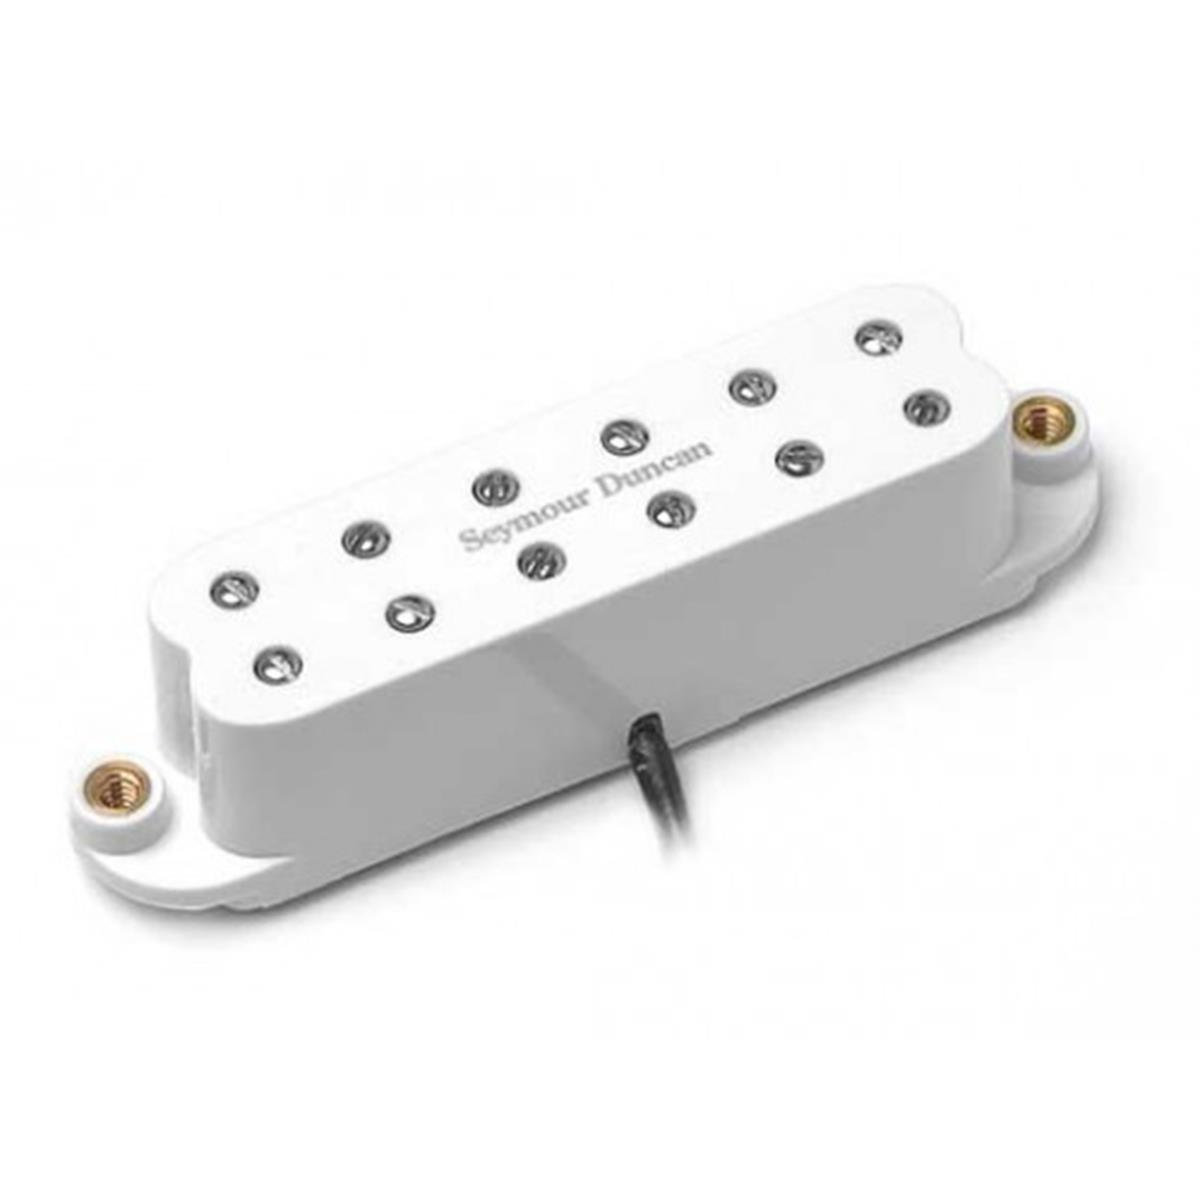 SEYMOUR-DUNCAN SJBJ 1 JEFF BECK JR JUNIOR NECK WHITE 11205-15-W SD1120515W